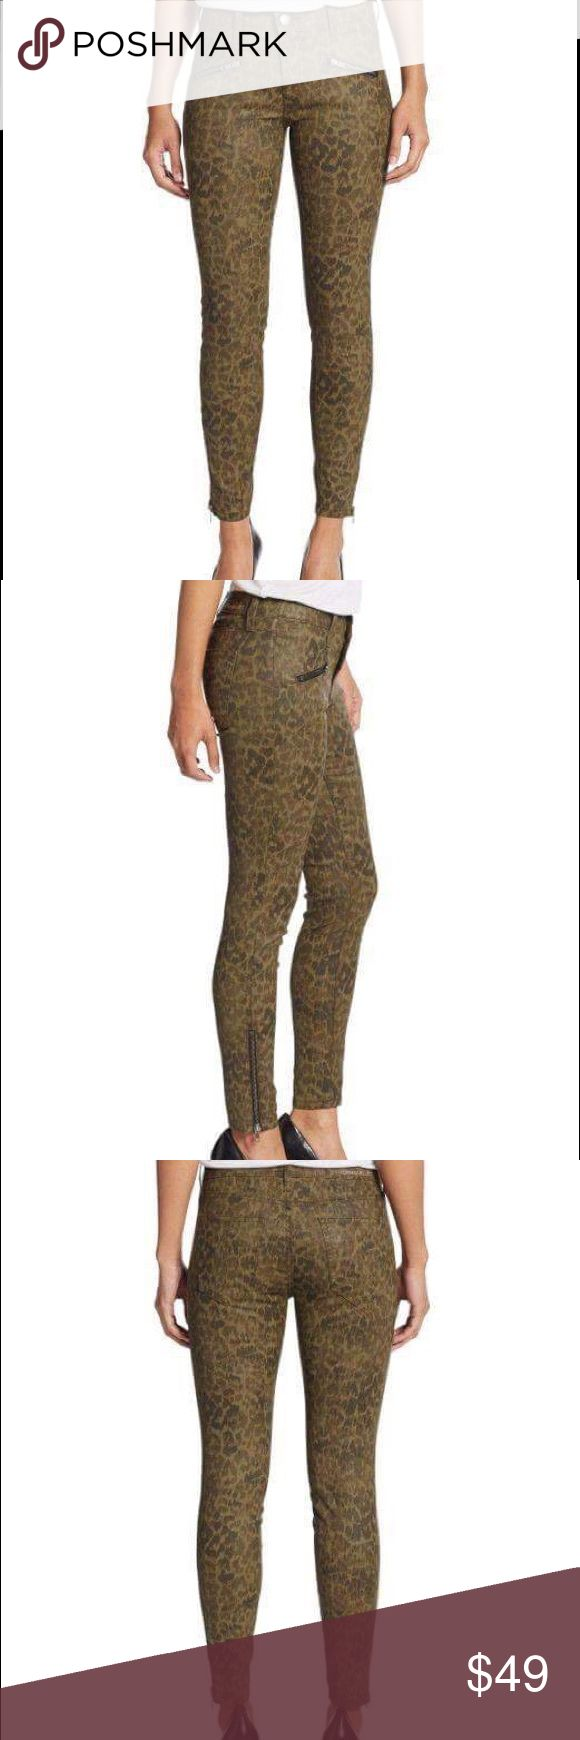 Current/Elliott Animal-print Skinny Zip Jeans NWOT Current/Elliott women's Green Sohozi Animal-print Skinny Zip Jeans. Zip detailing ups the sleek effect of these exotic-printed skinnies. Belt loops. Zip fly with button closure. Two front zip pockets. Zip cuffs. Two back patch pockets. Comes from a smoke free and pet free home. Fast shipping!!! Current/Elliott Jeans Skinny